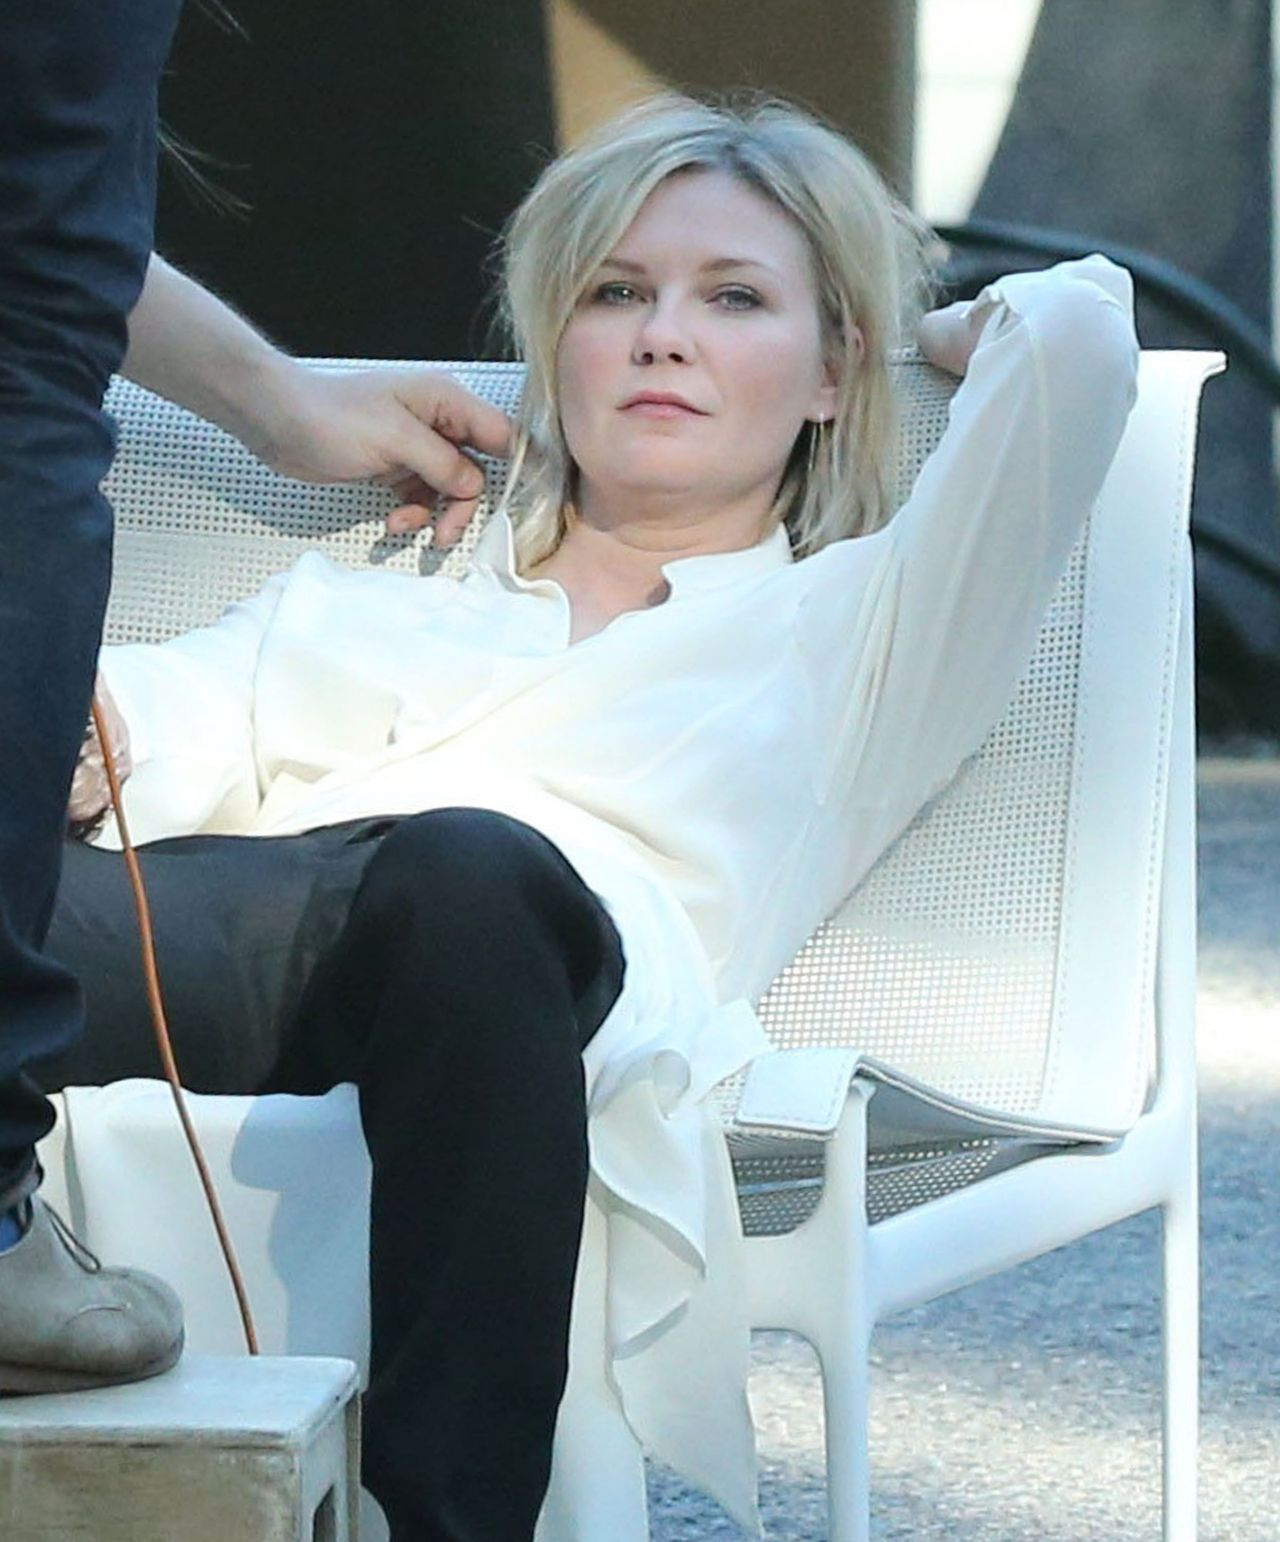 Kirsten Dunst On The Set Of A Photo Shoot In Los Angeles